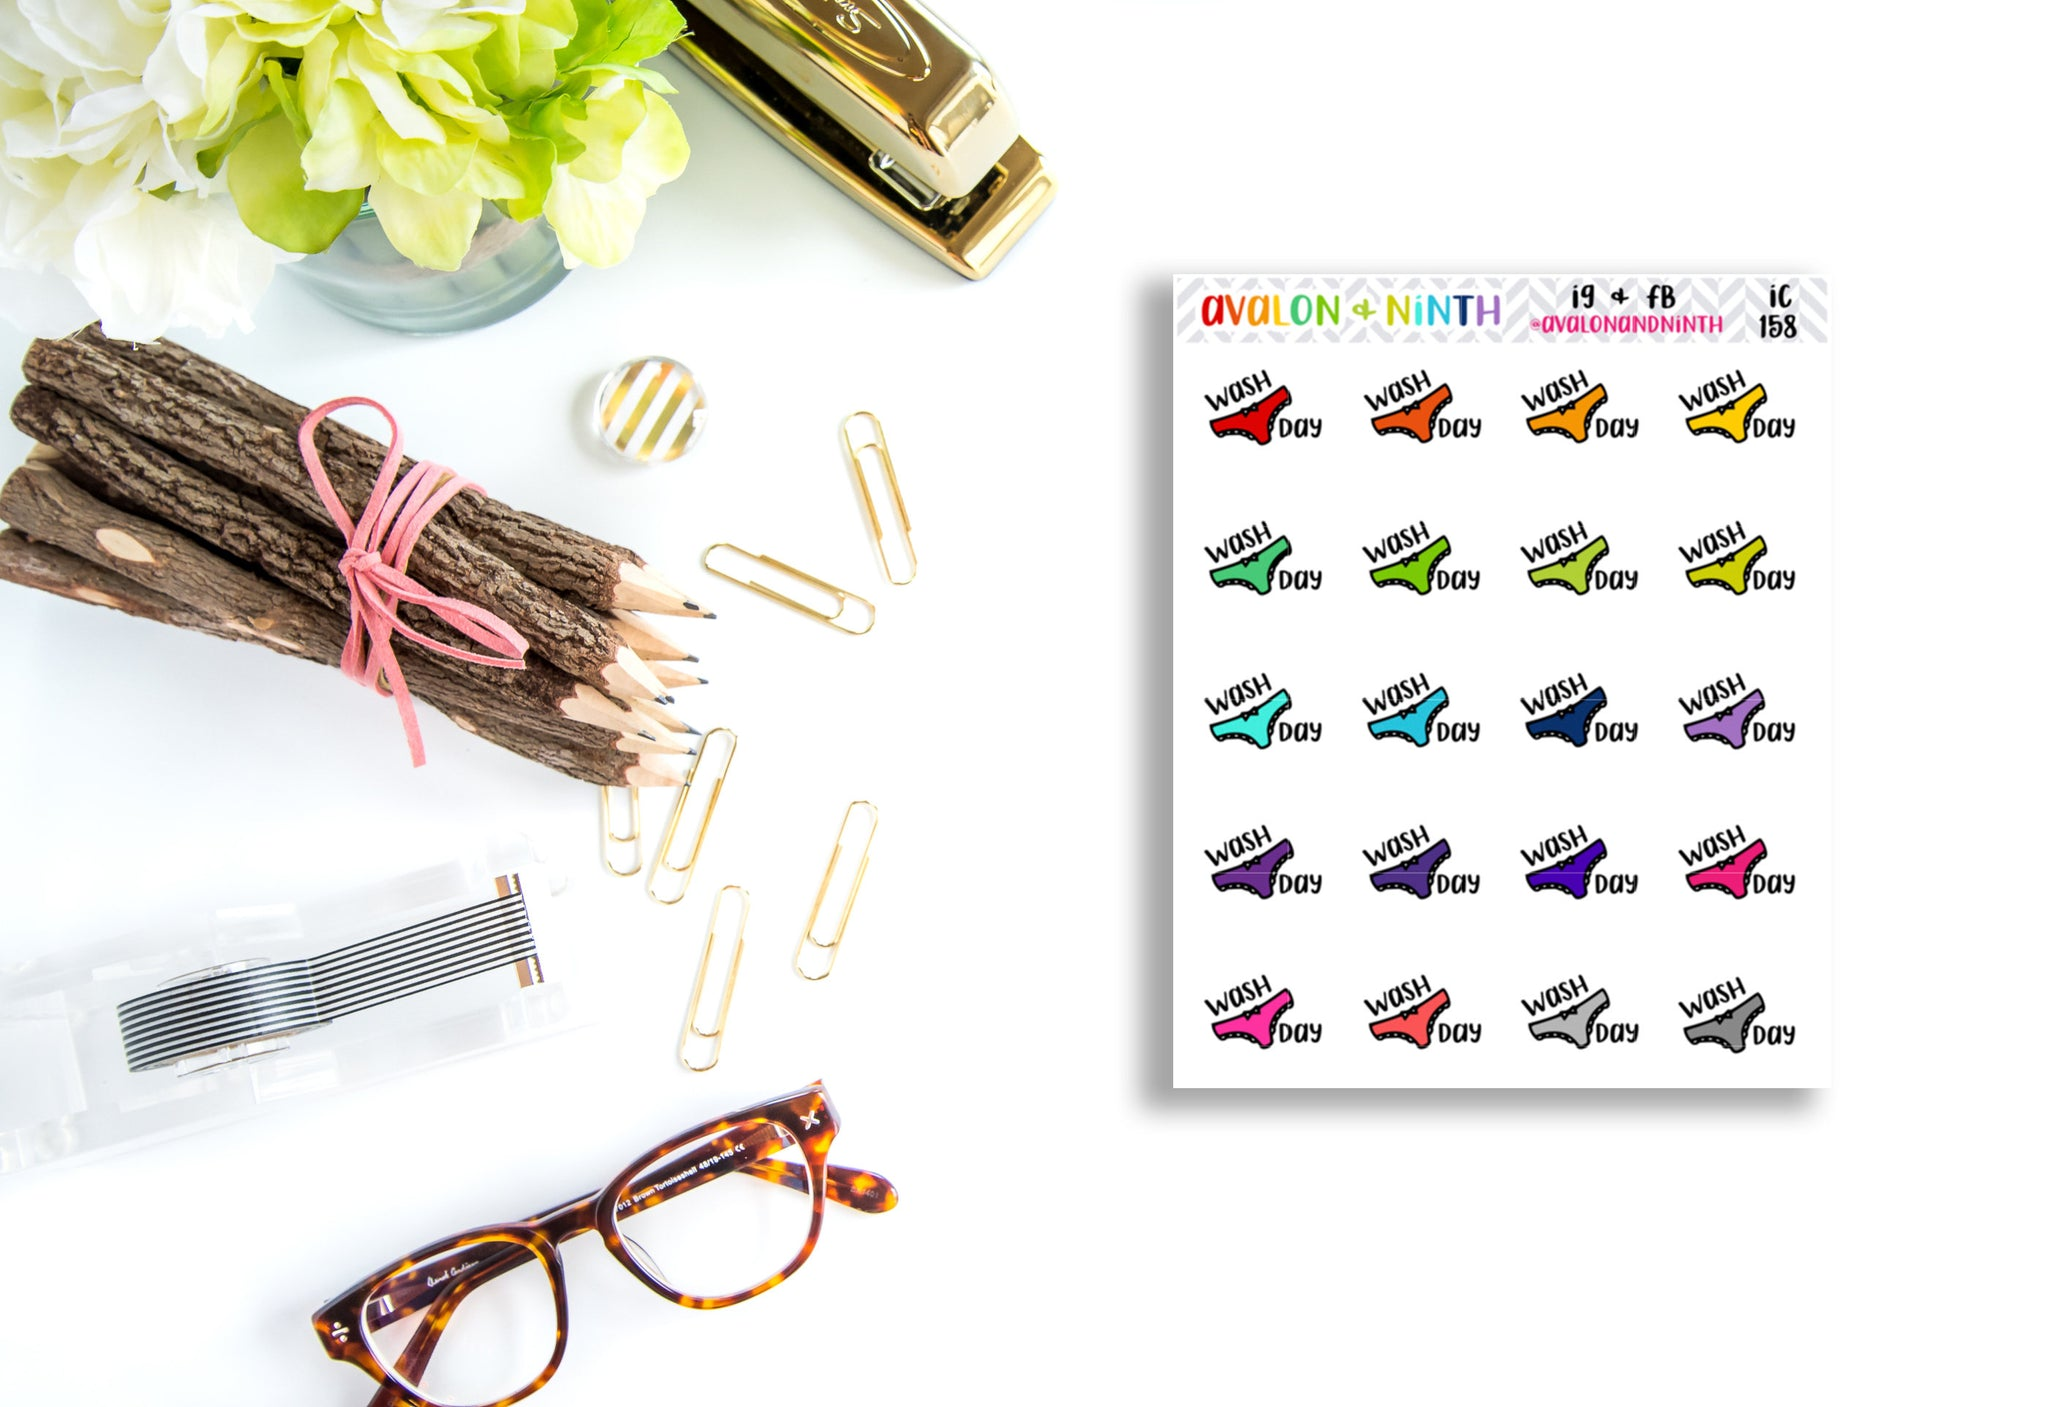 Wash Day // Laundry Day // Underwear Stickers // Planner Stickers // IC158